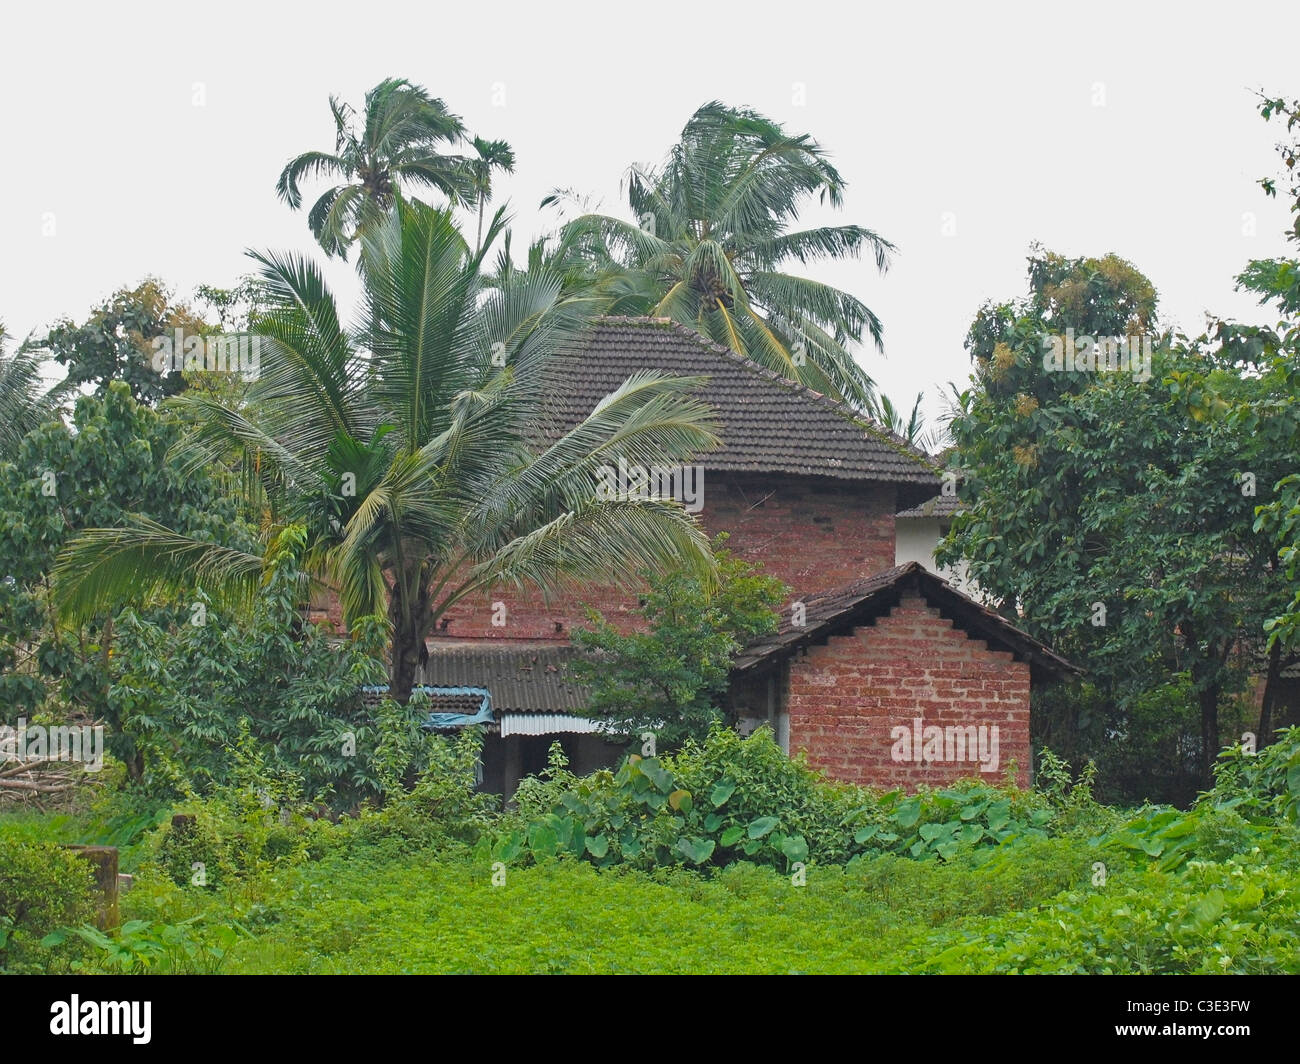 Traditional houses with sloping roof made of manglori tiles kerala stock photo royalty free - Traditional houses attic ...